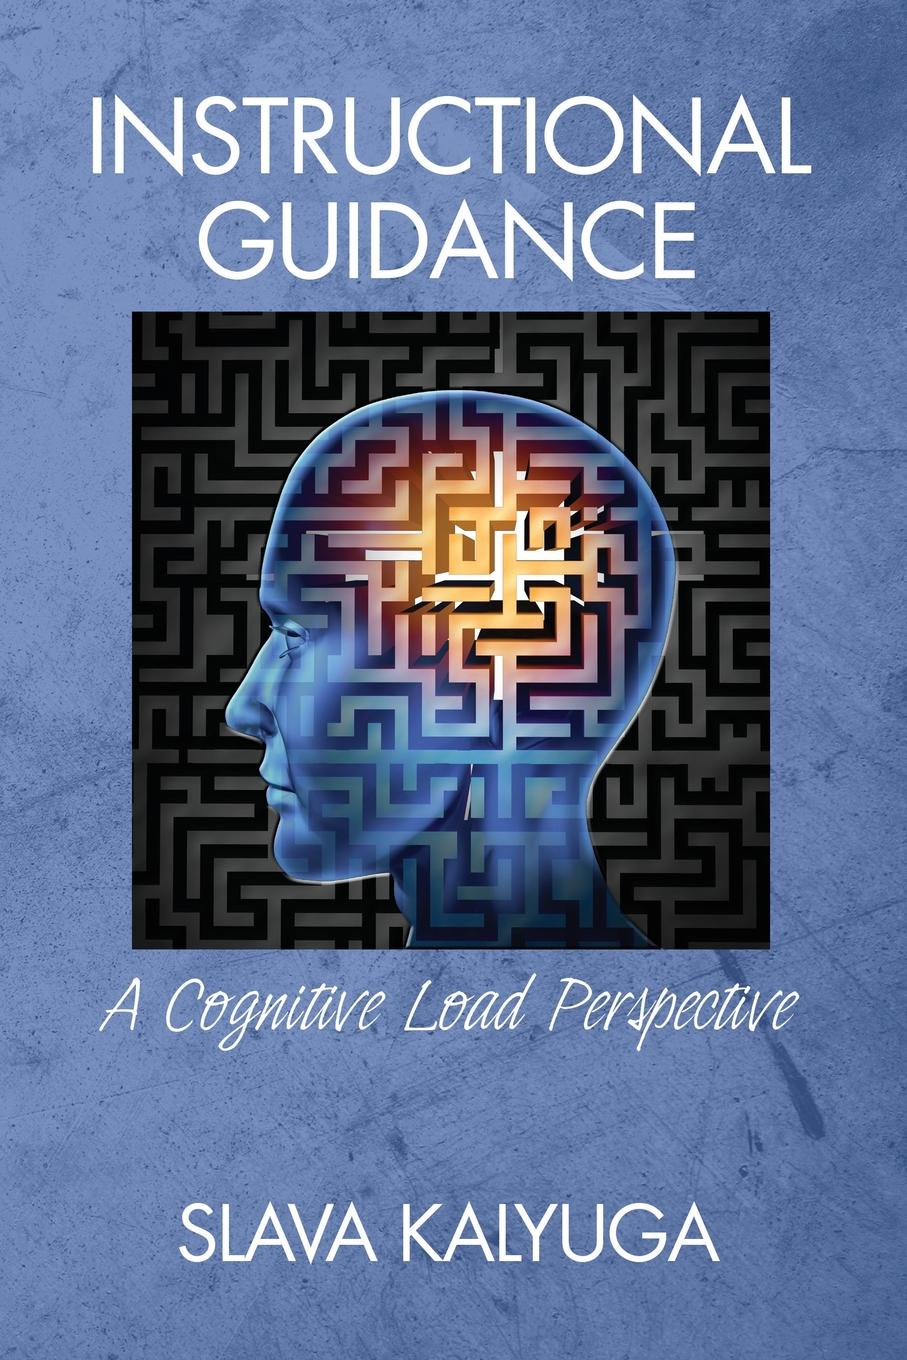 Slava Kalyuga Instructional Guidance. A Cognitive Load Perspective george piskurich m rapid instructional design learning id fast and right